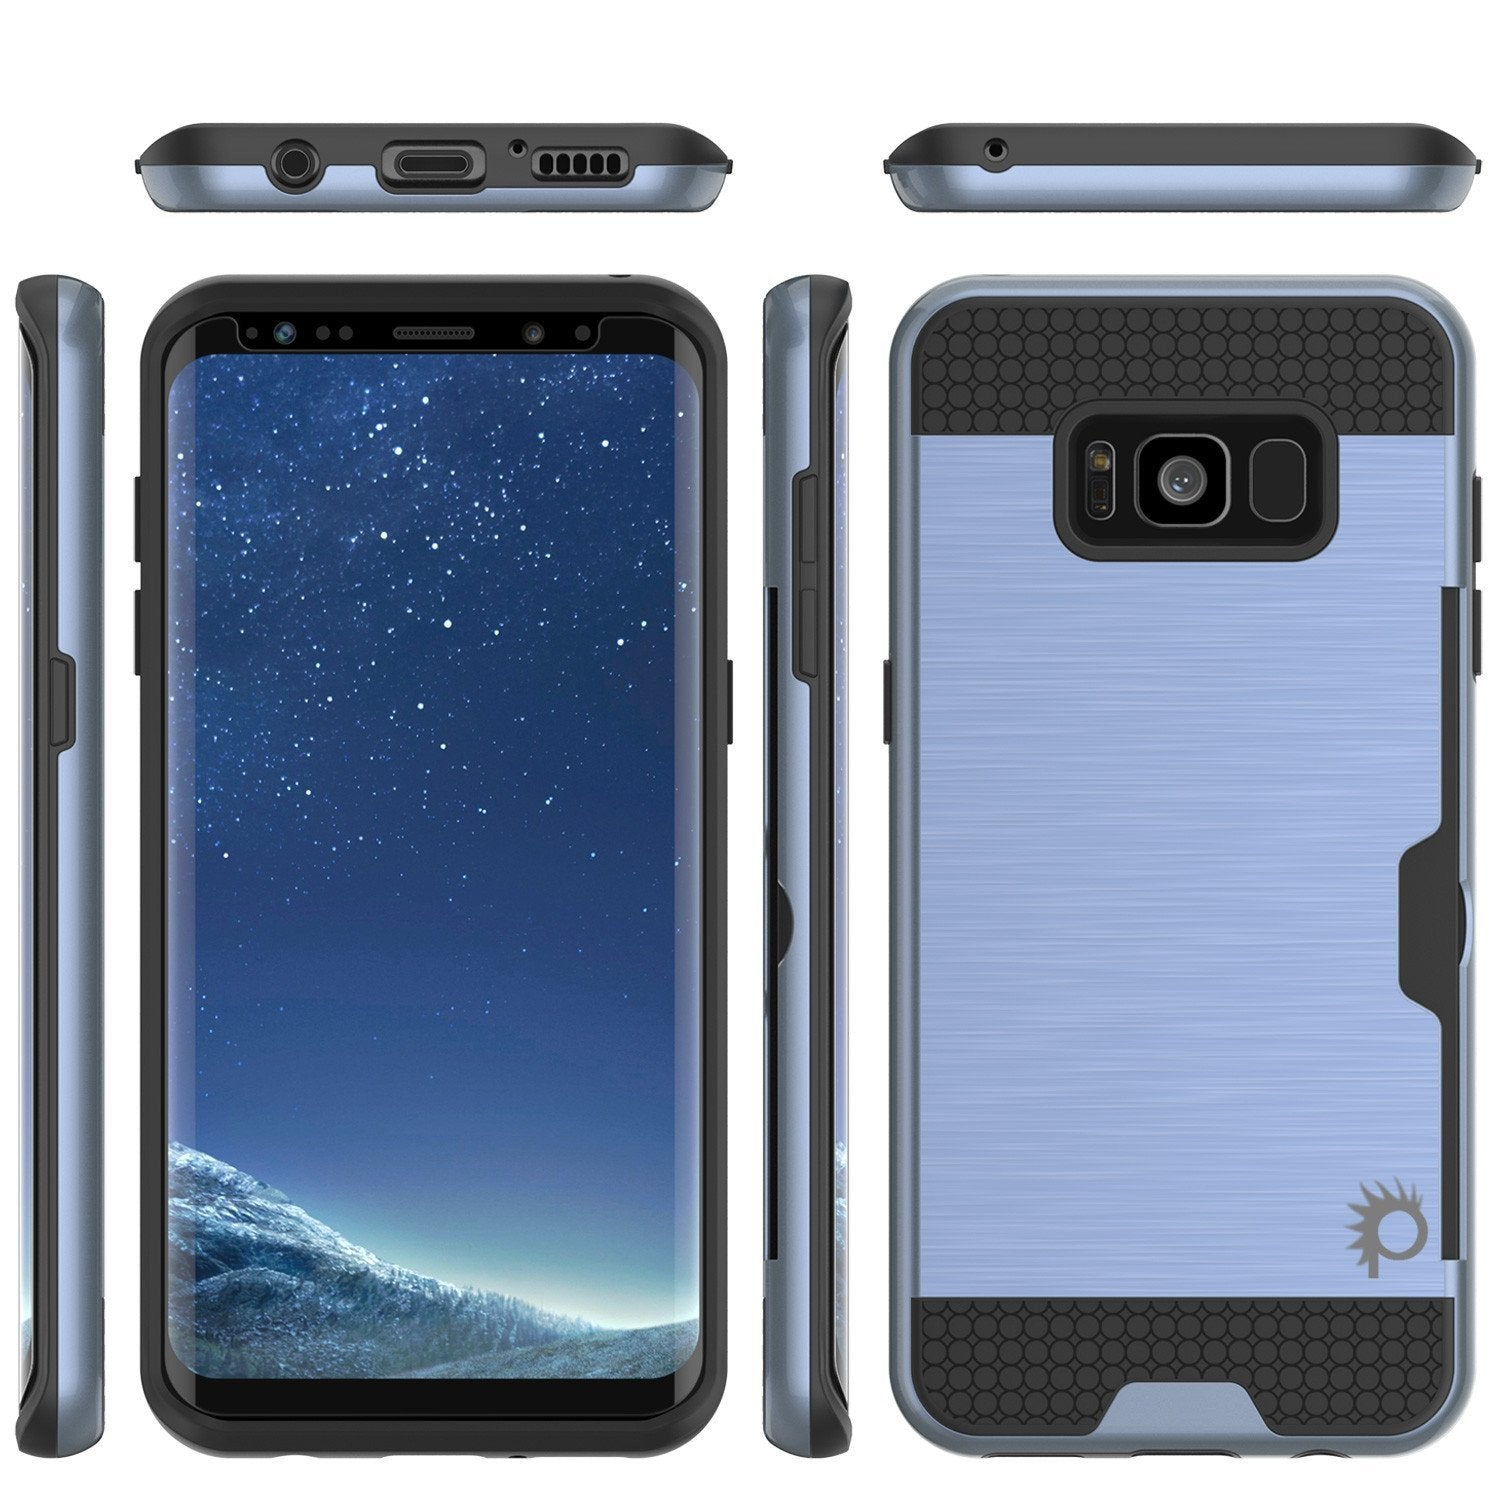 Galaxy S8 Plus Dual-Layer Anti-Shock Screen Protector Case [Navy]